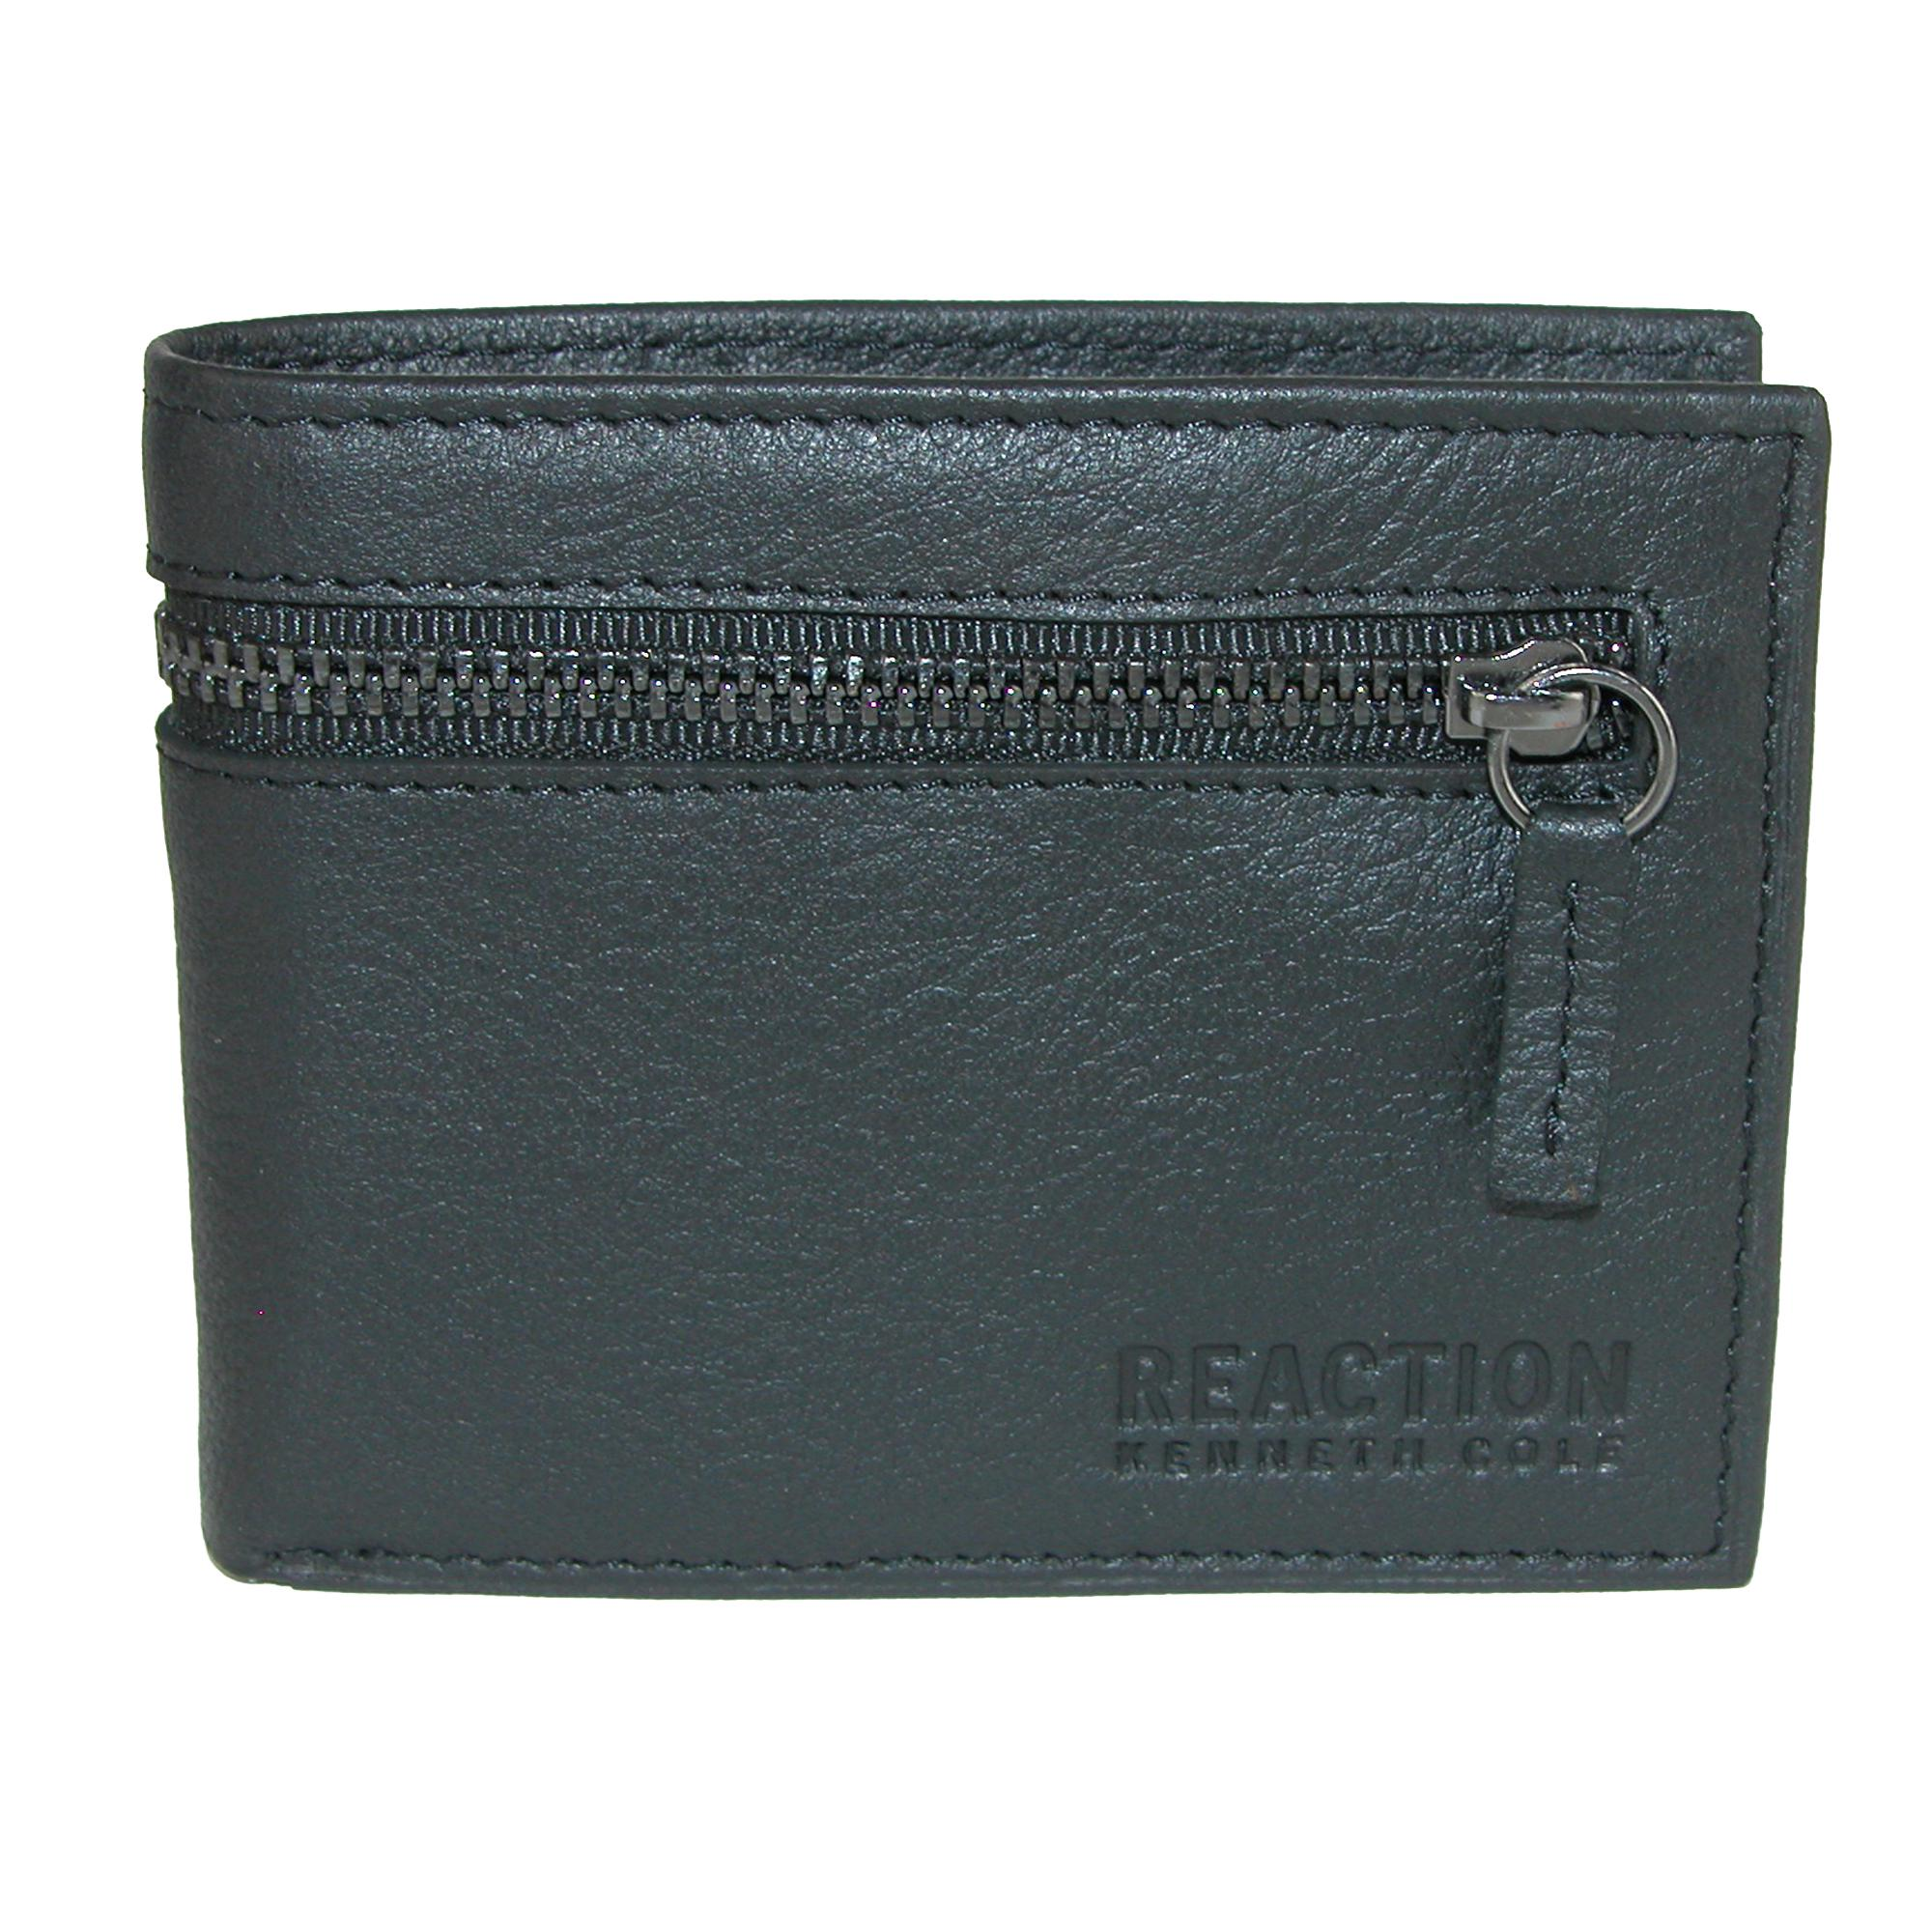 Kenneth Cole Men's Leather Slim Bifold Wallet With Exterior Zipper Pocket